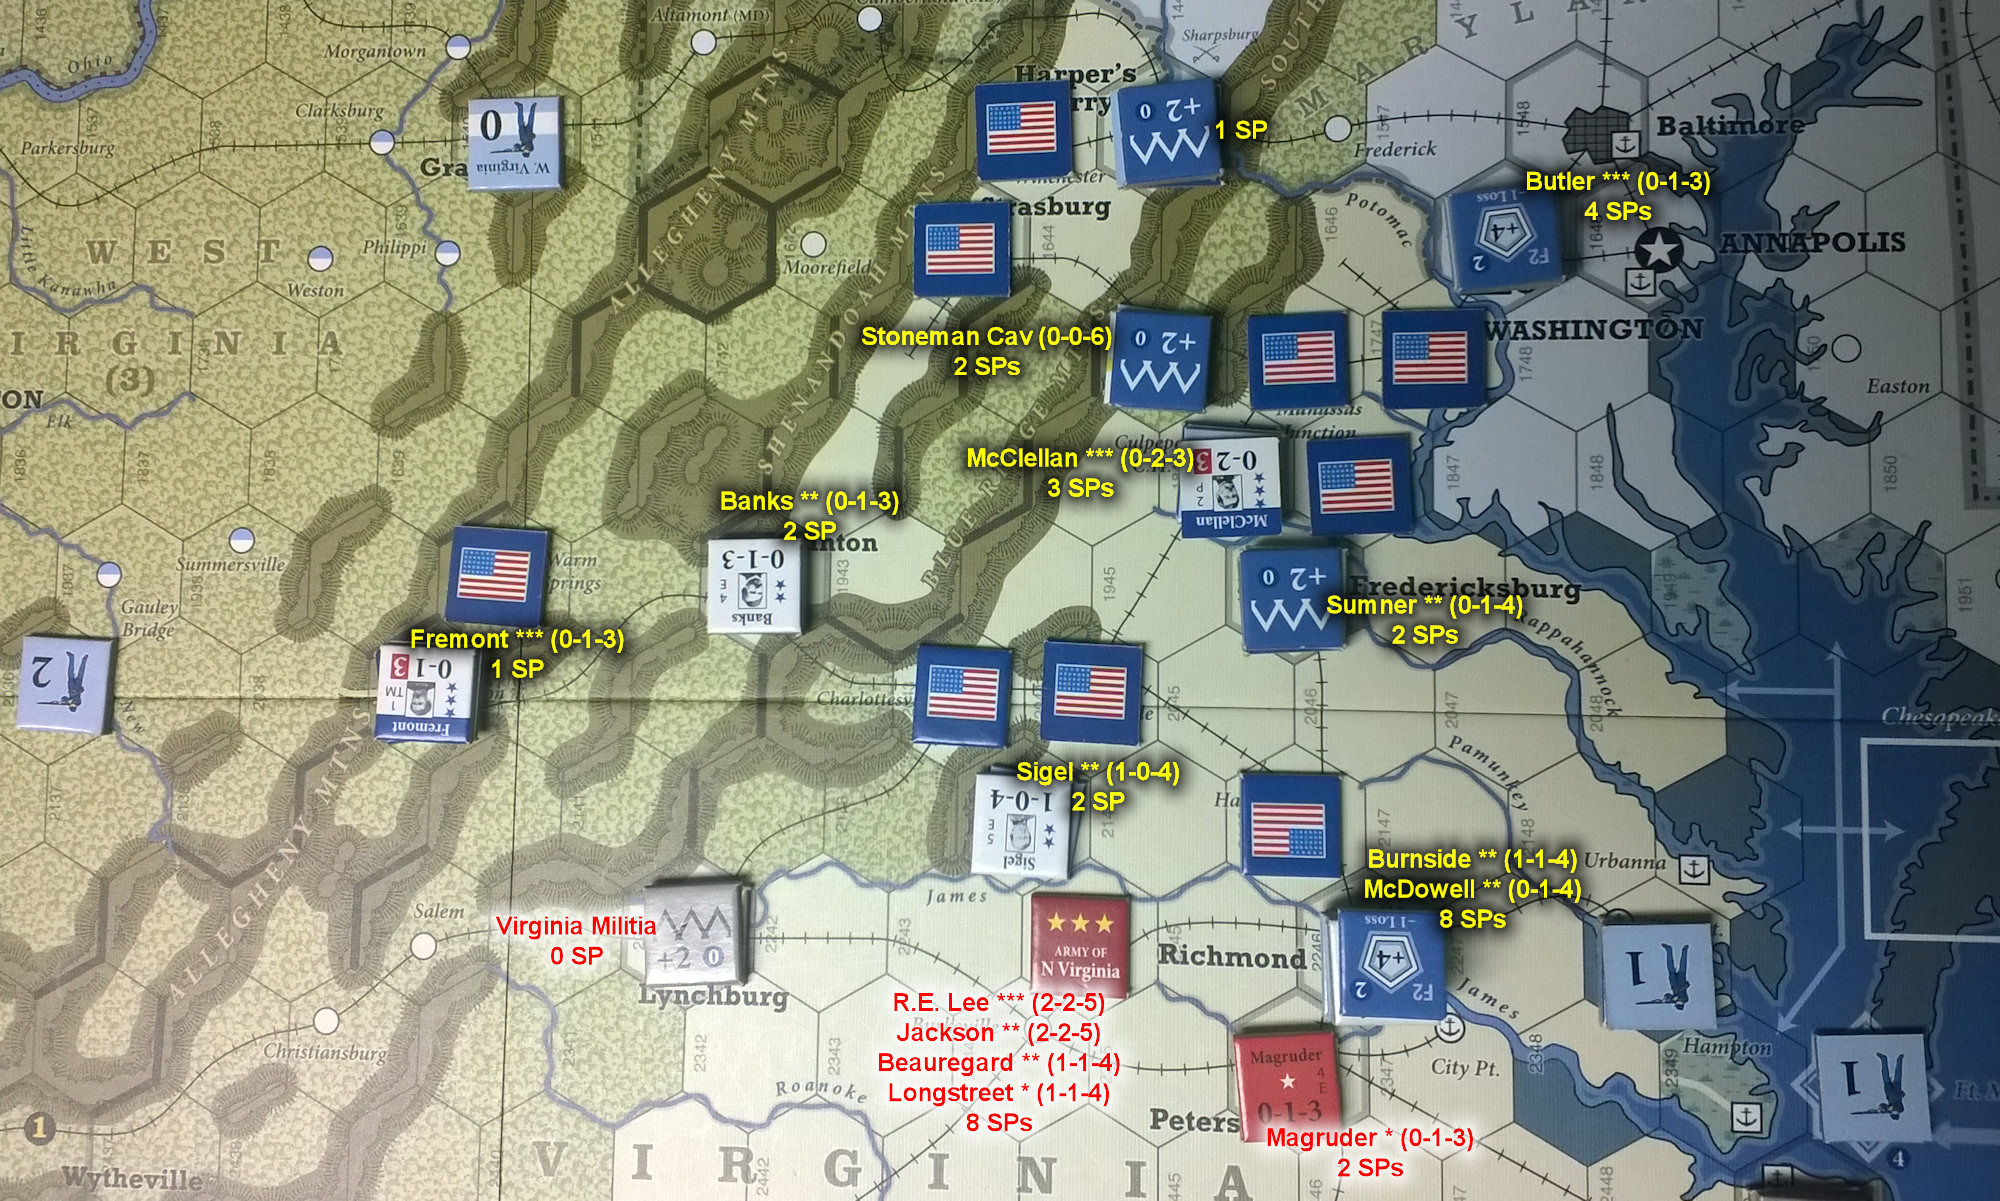 The U.S. Civil War: Eastern Theater at the end of Game Turn 5